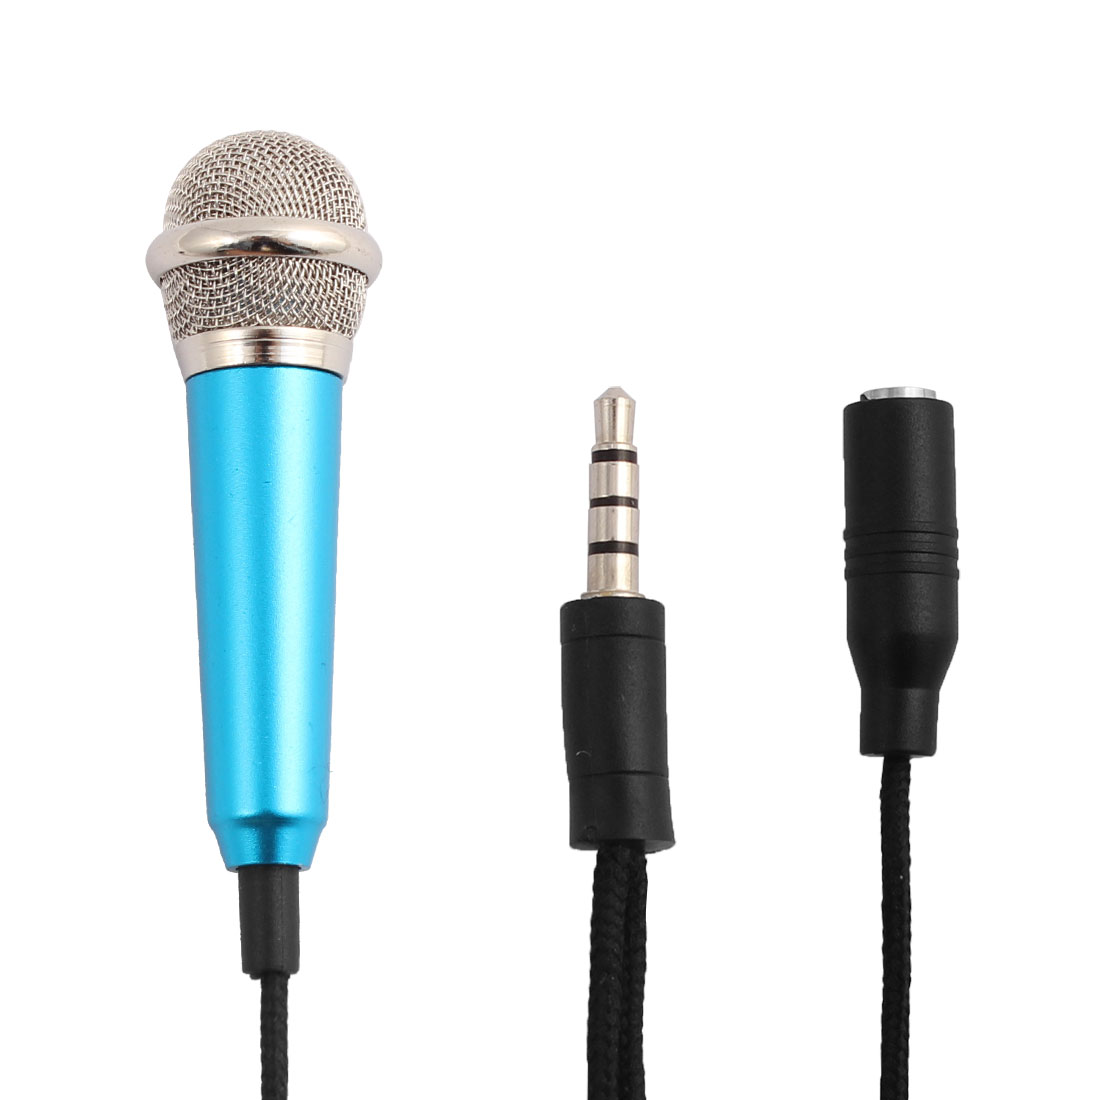 Mini Portable 3.5mm Connector Stereo Microphone Mic Navy Blue for Smartphone Laptop Notebook